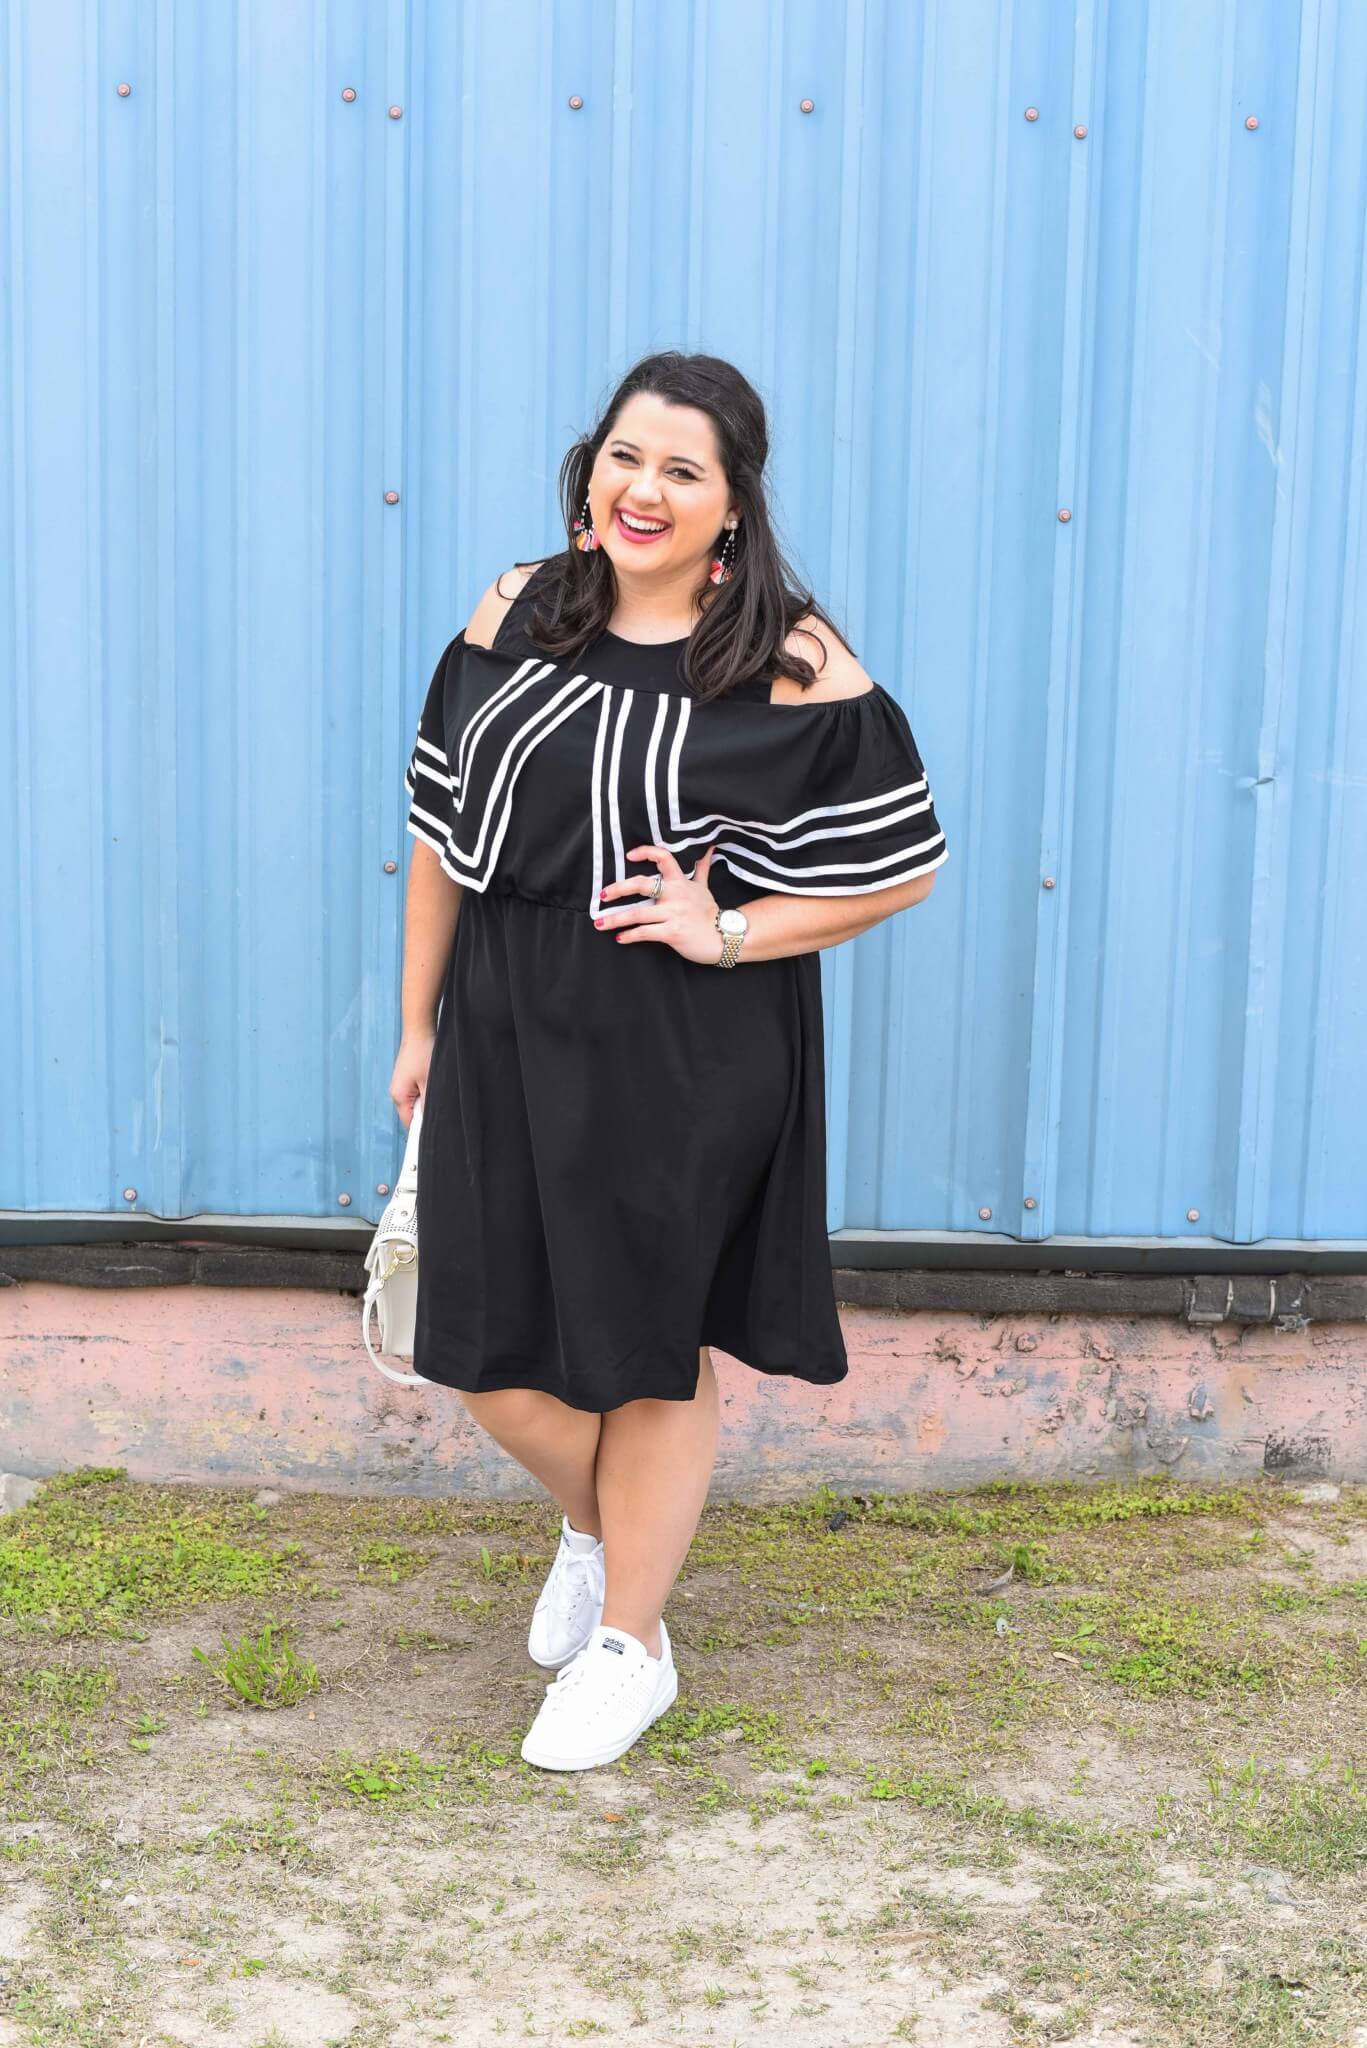 About Emily, the woman behind popular Houston Curvy Fashion Blog, Something Gold, Something Blue